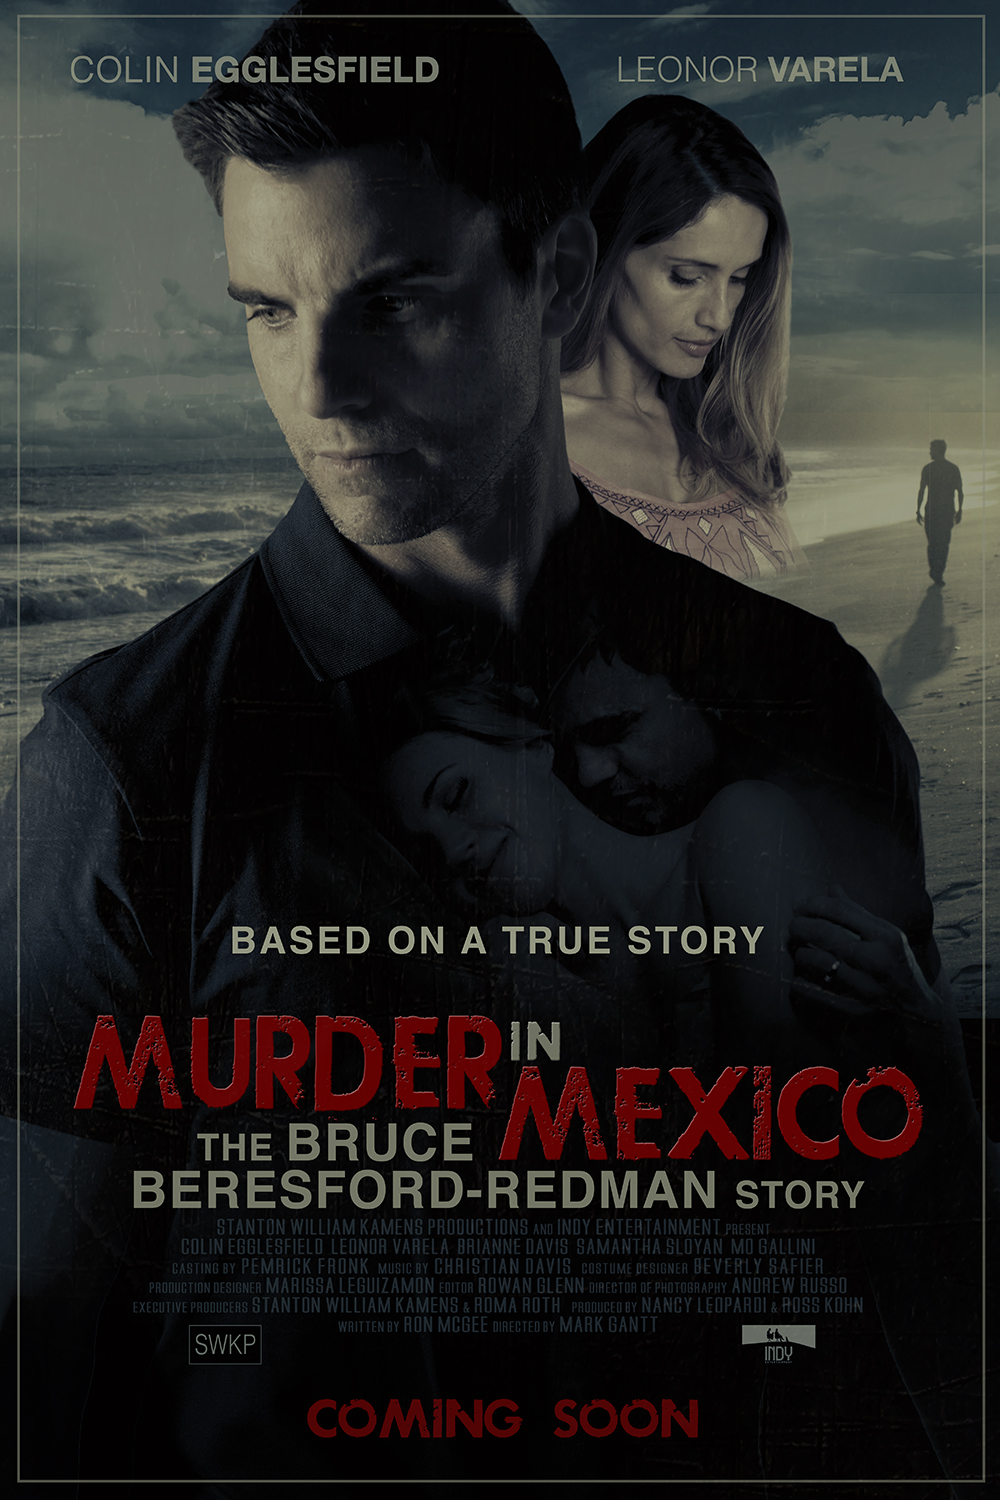 MURDER_IN_MEXICO_ONESHEET_5X7